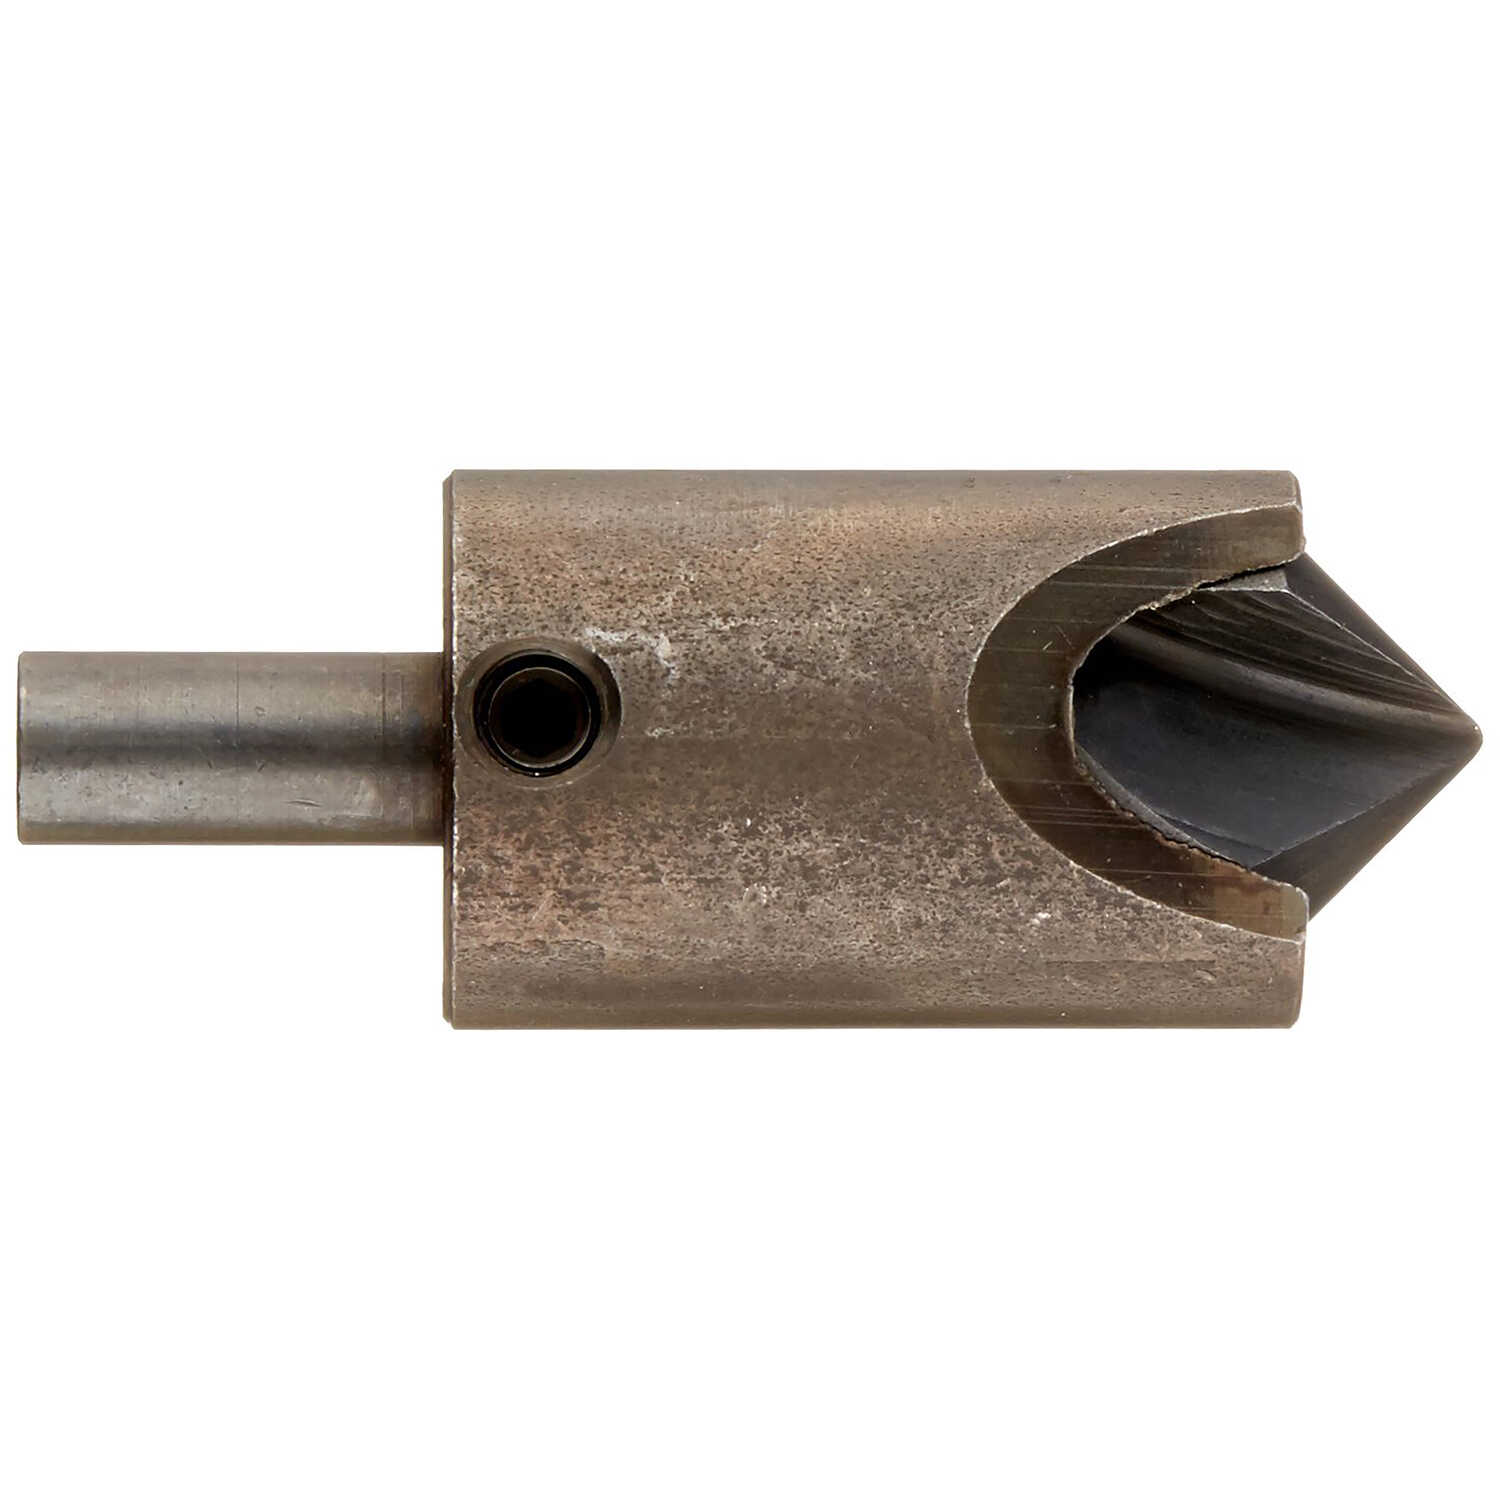 Vermont American  3/4 in. Dia. Tool Steel  Adjustable Countersink  1/4 in. Round Shank  1 pc.